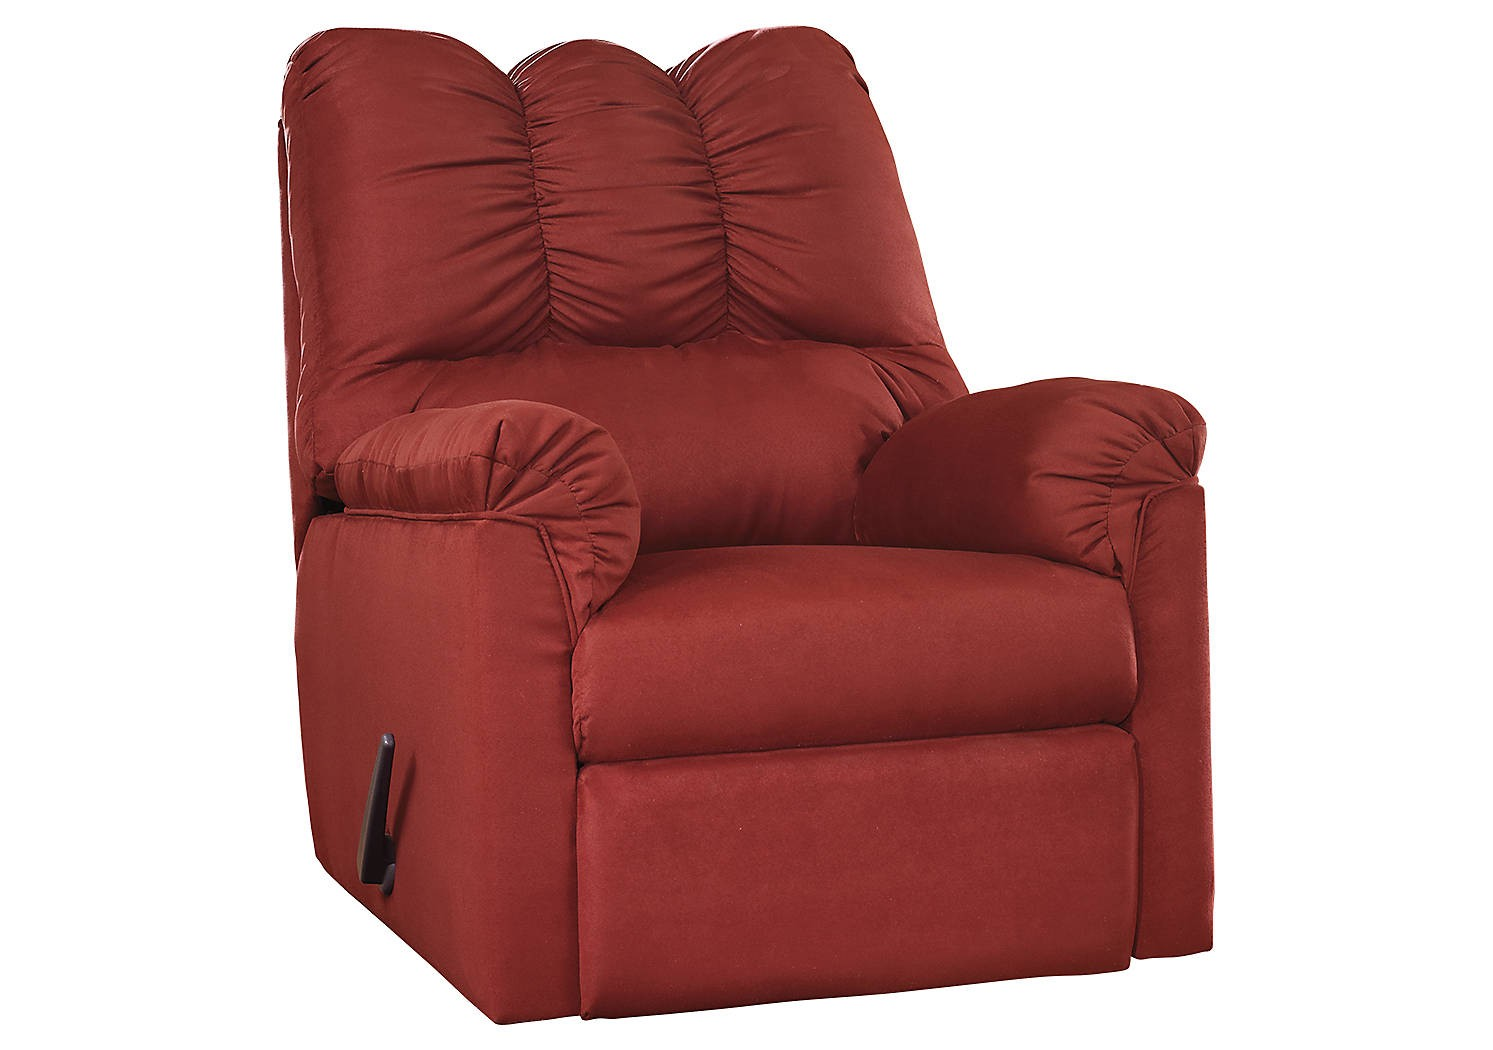 Ashley's Darcy Red Recliner